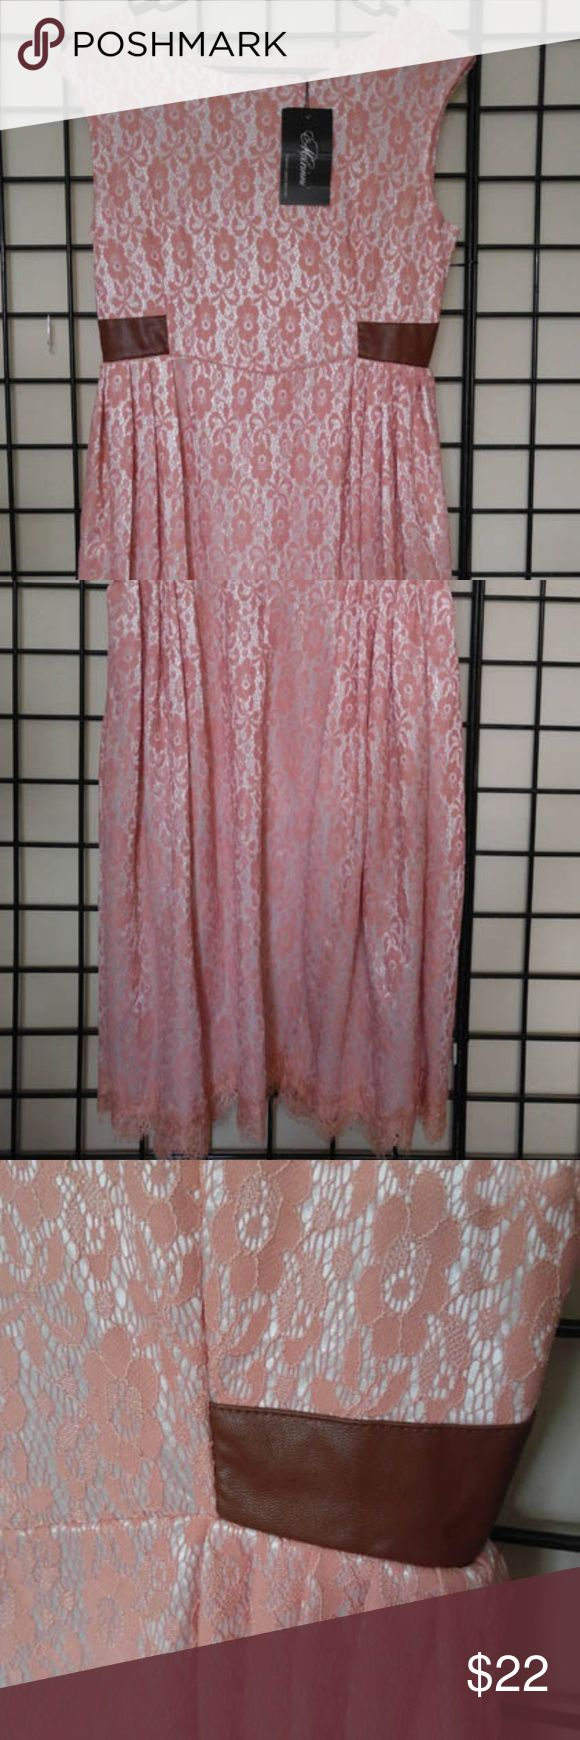 Vintage Cut Peach Lace Dress Faux Leather Accents Neckline has a vintage style cut to skim the shoulders. Peach lace with Brown faux leather accents at the waist. Length falls just below the knee. Back zip, fully lined. Nylon. New with tags. Dresses